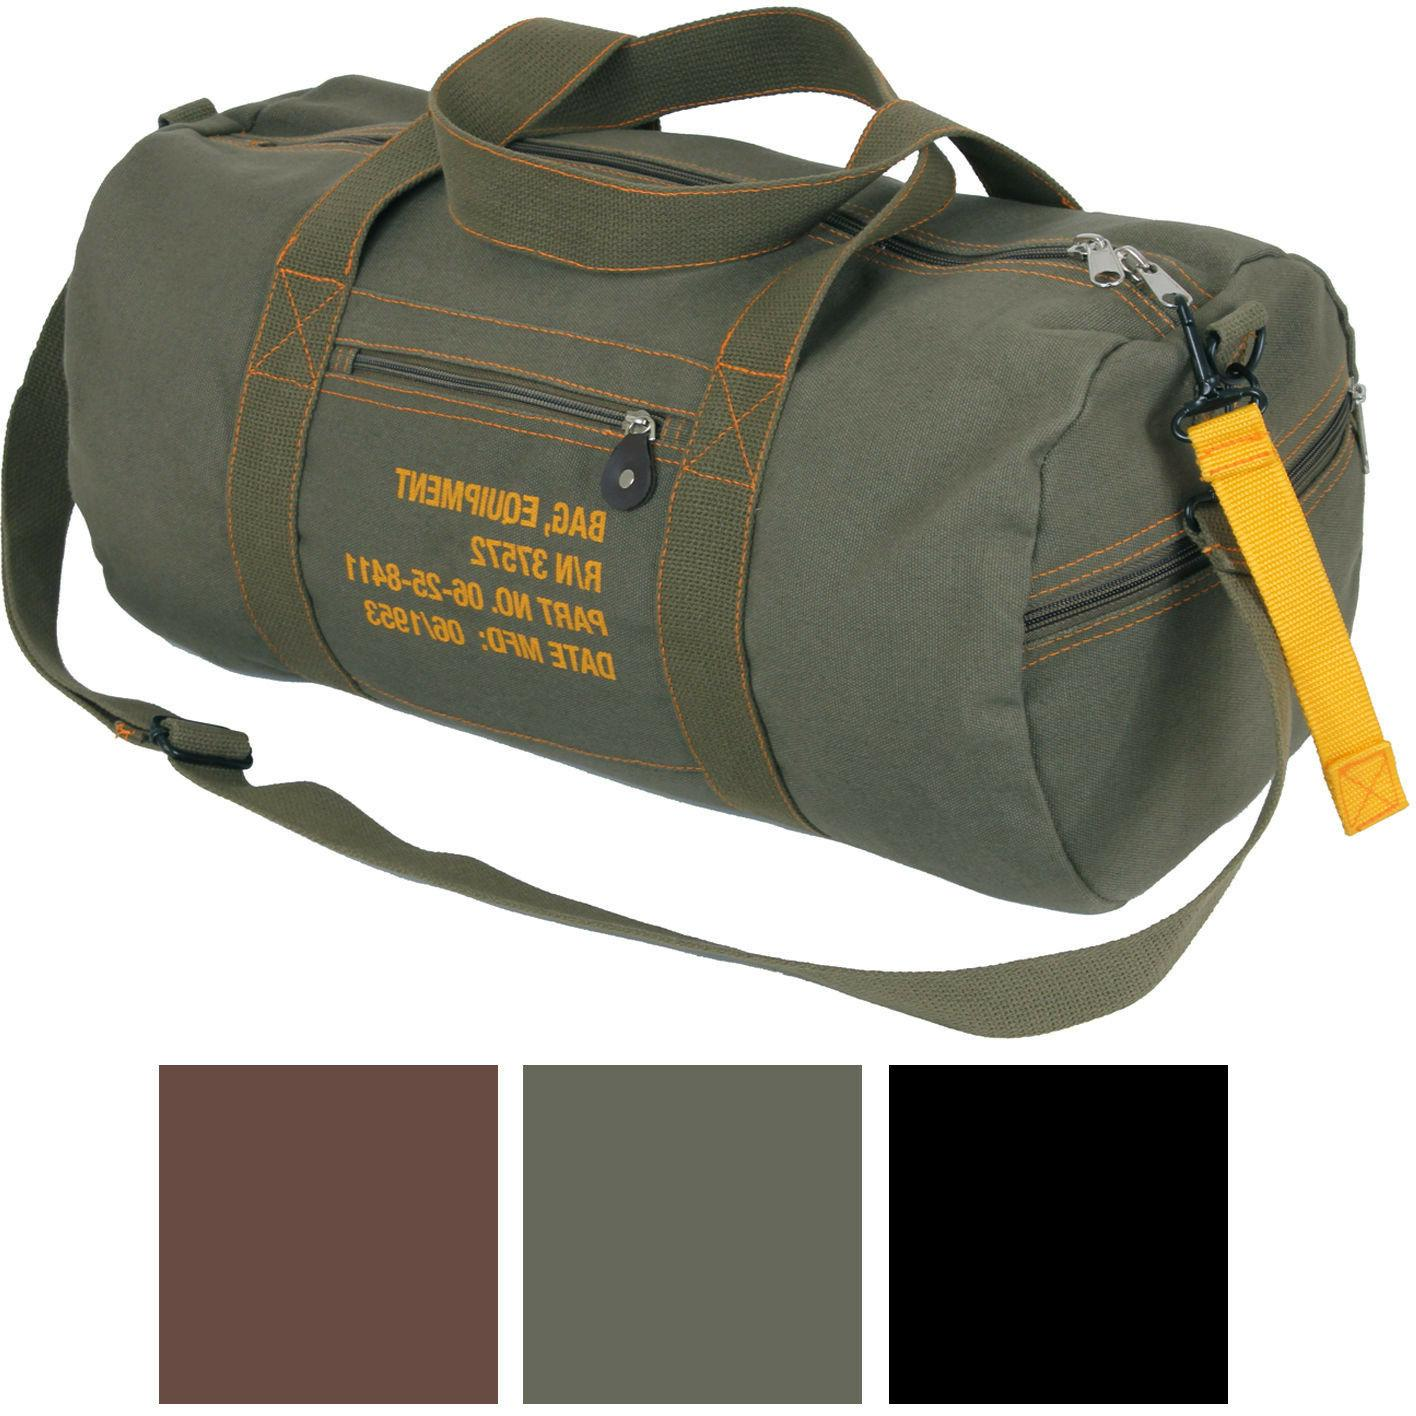 cotton canvas travel equipment carry duffle bag